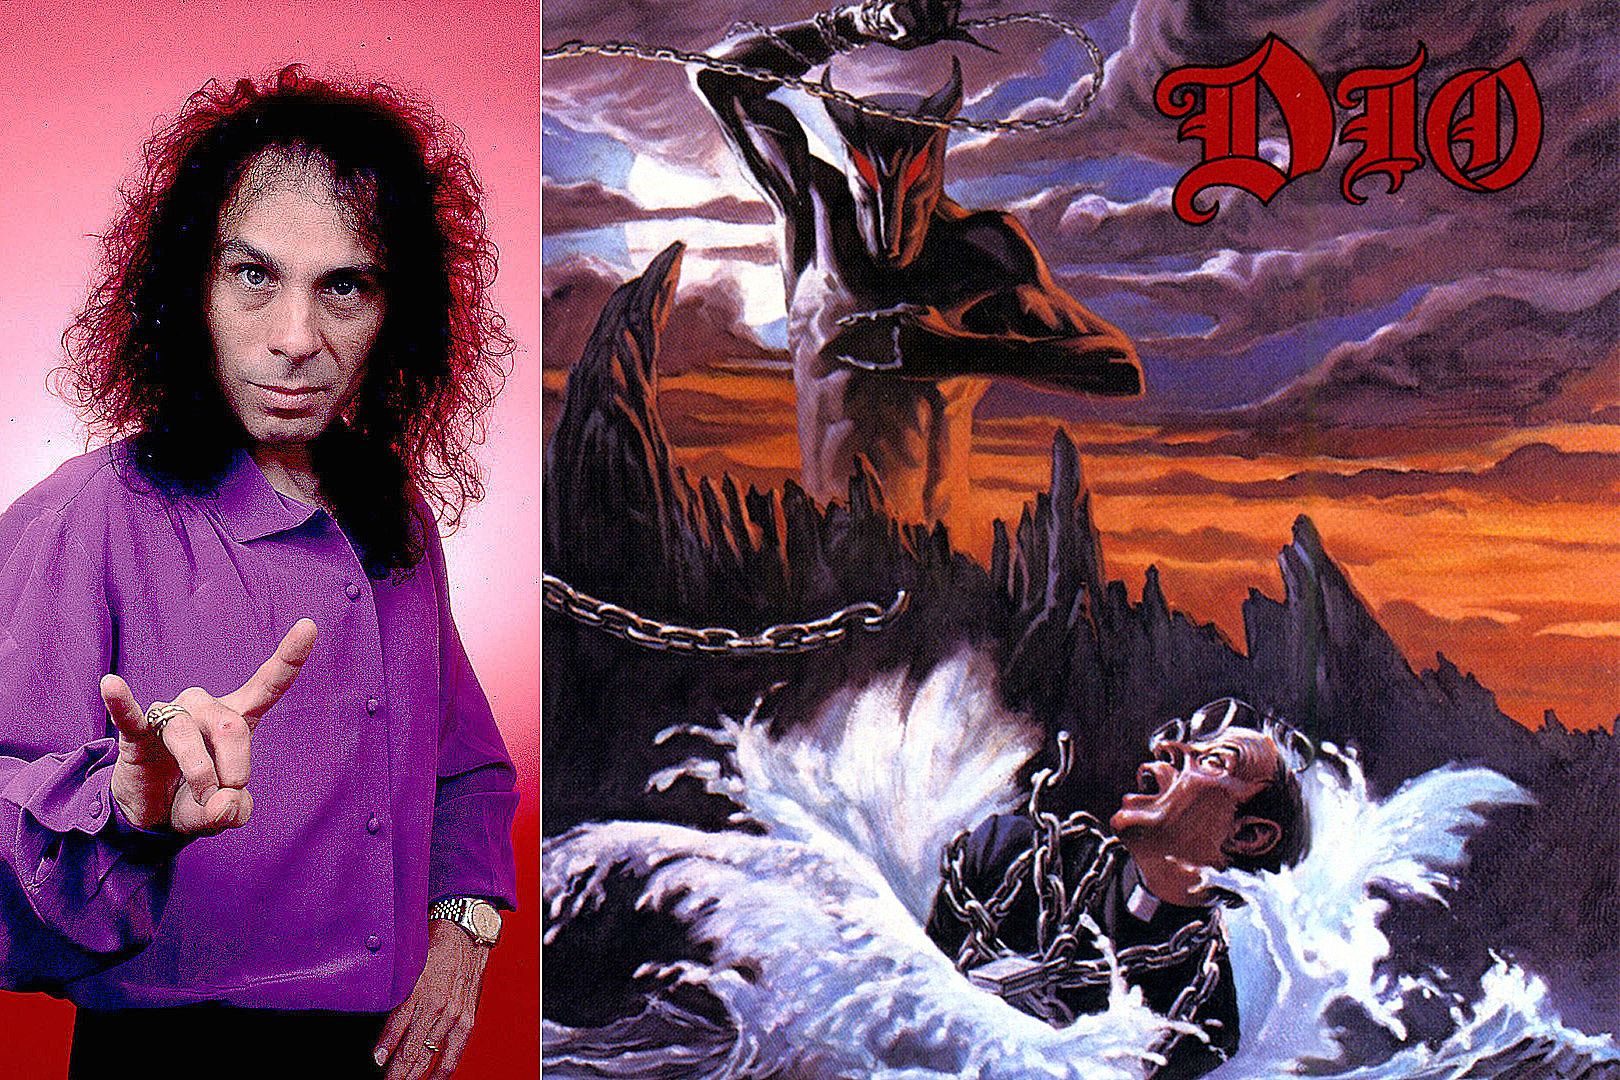 Here's a First Look at the New 'Holy Diver' Dio Graphic Novel